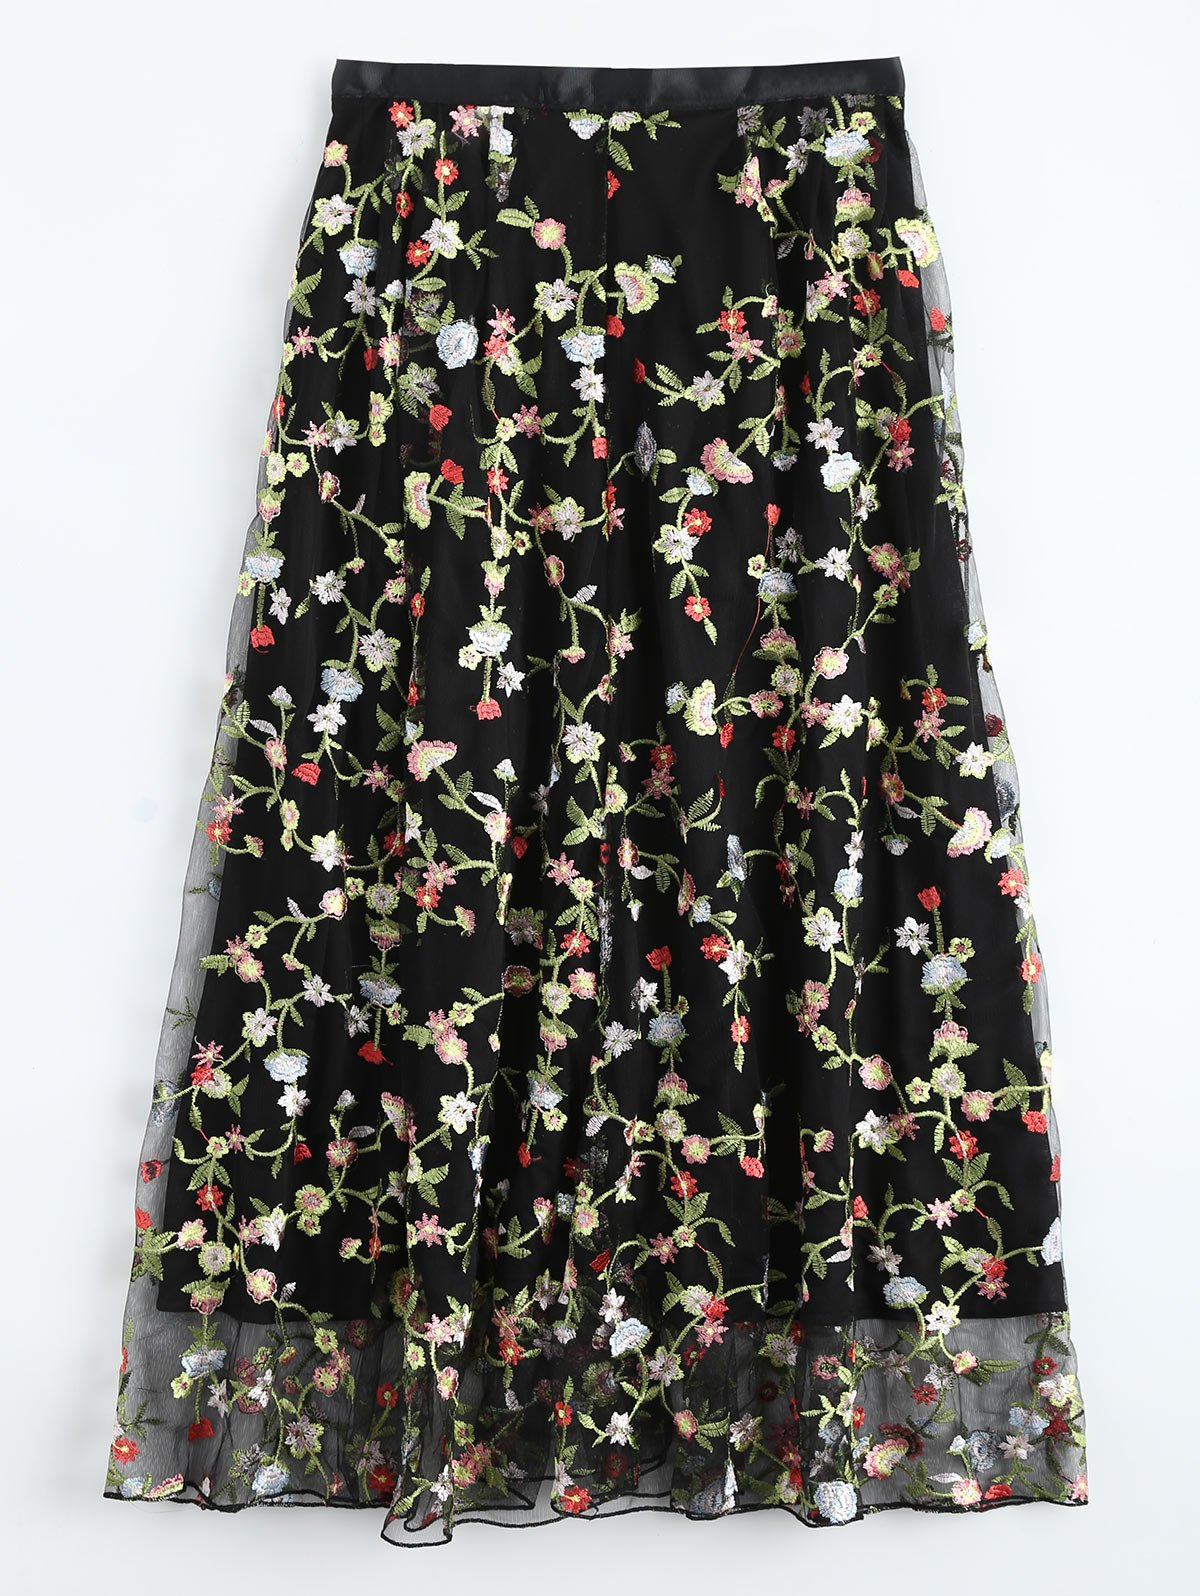 Floral Embroidered Tulle Skirt